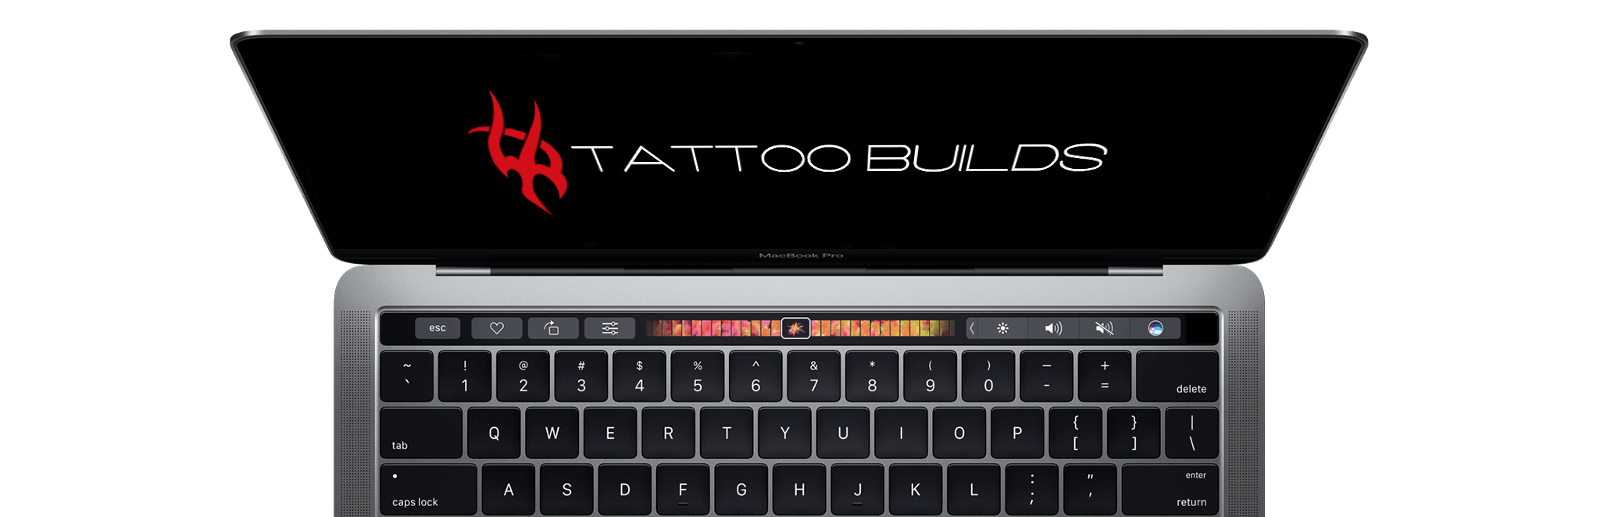 Tattoo Builds Laptop